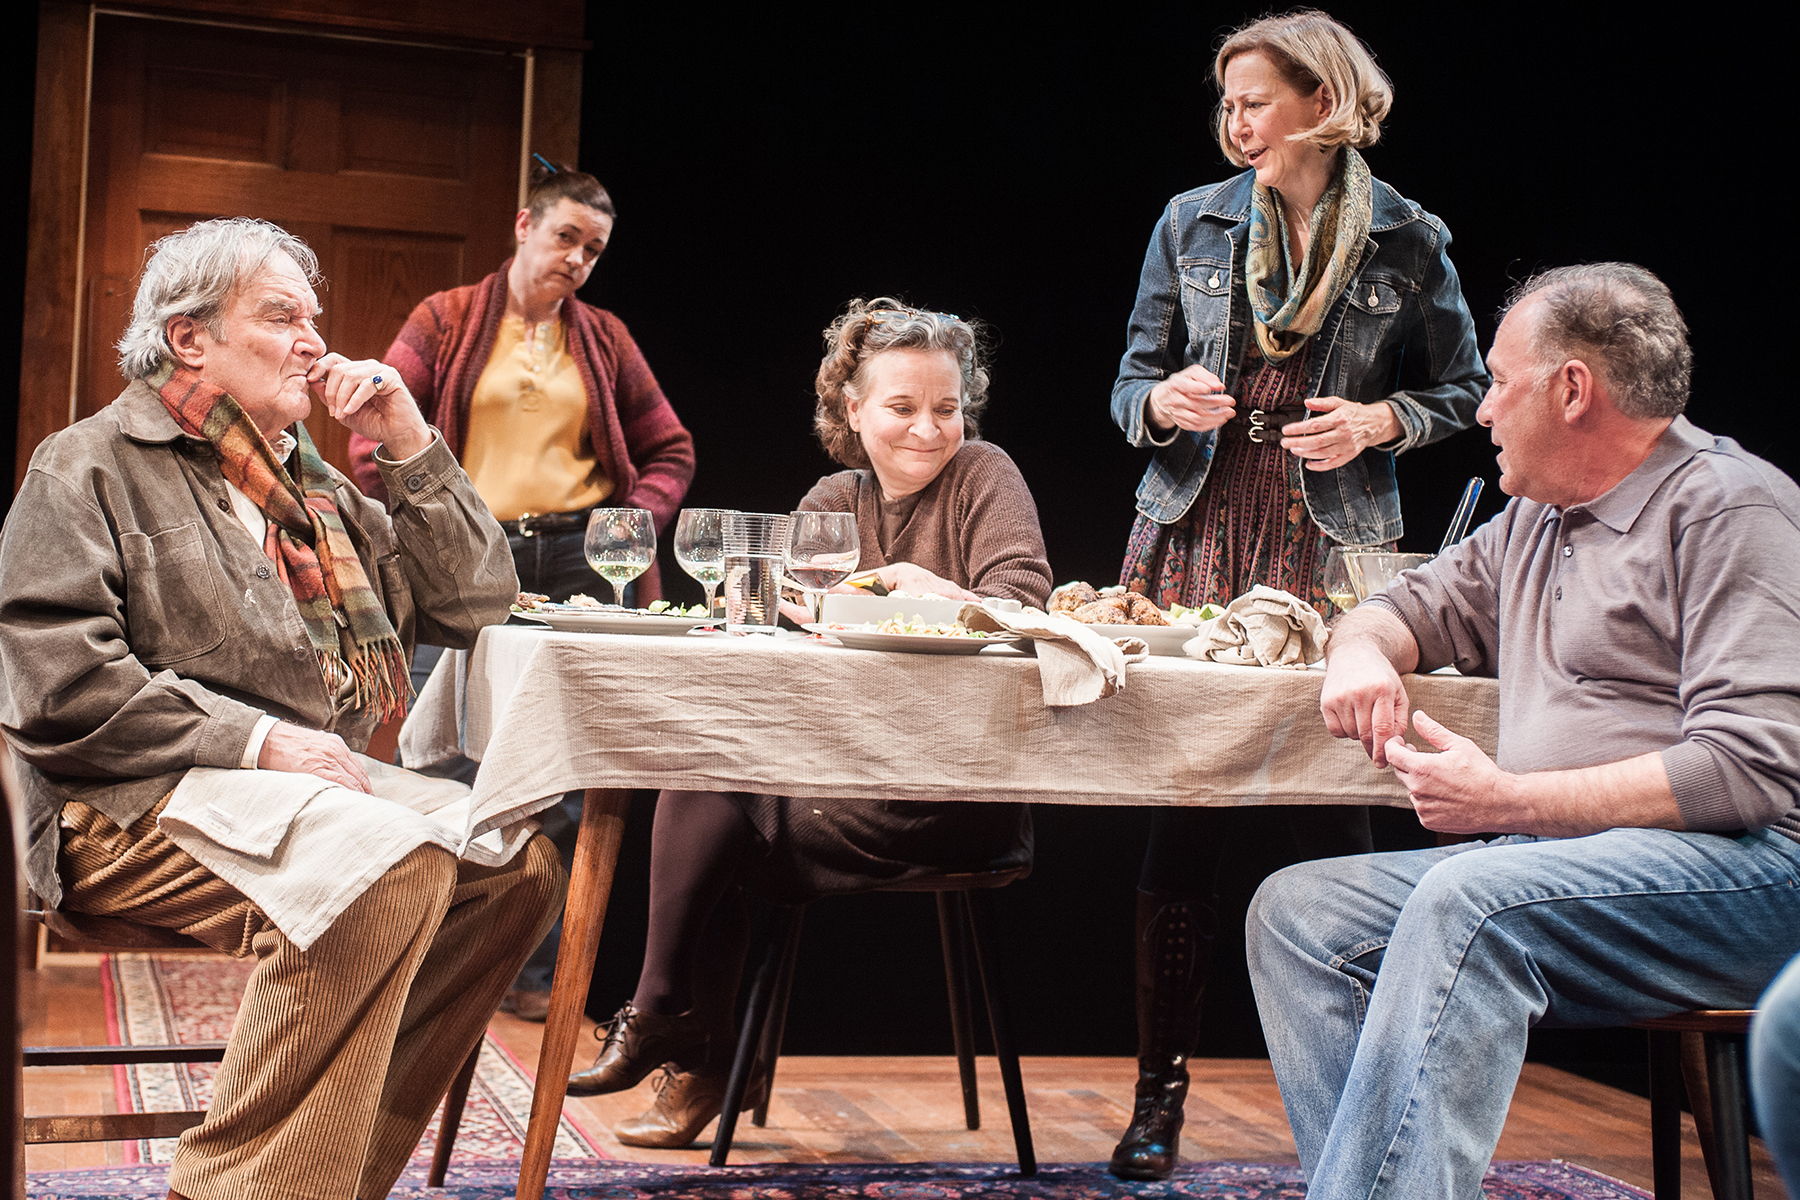 Ted van Griethuysen, Elizabeth Pierotti, Sarah Marshall, Kimberly Schraf, and  Rick Foucheux in  That Hopey Changey Thing.  (Photo: Teddy Wolff)